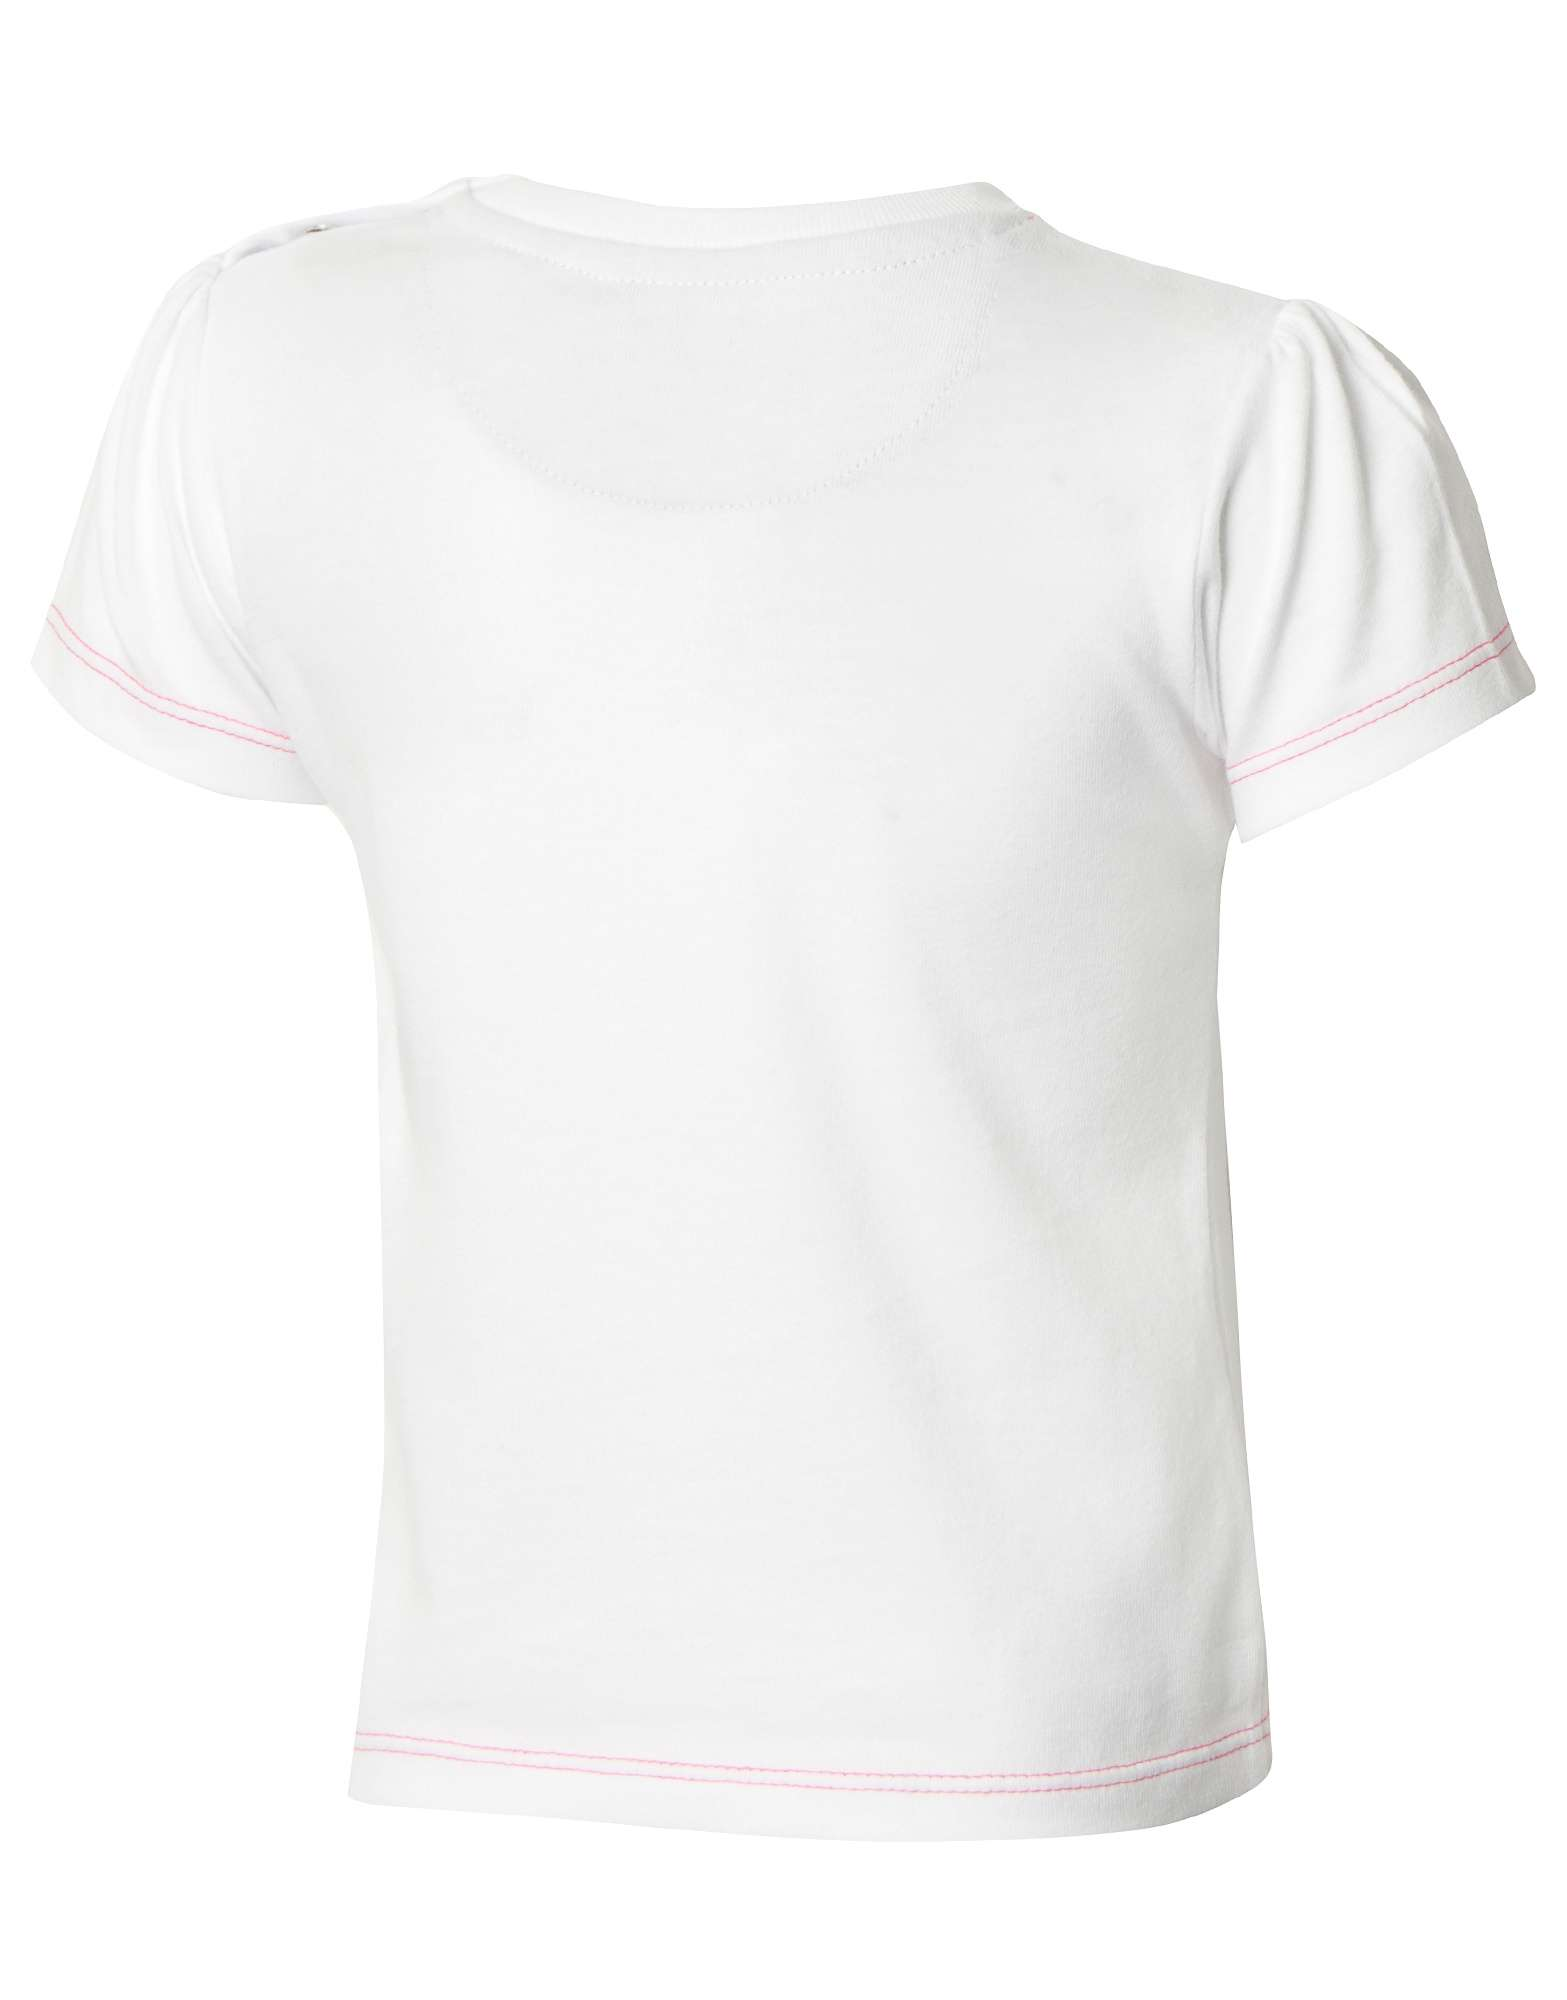 McKenzie Girls Light T-Shirt Infants